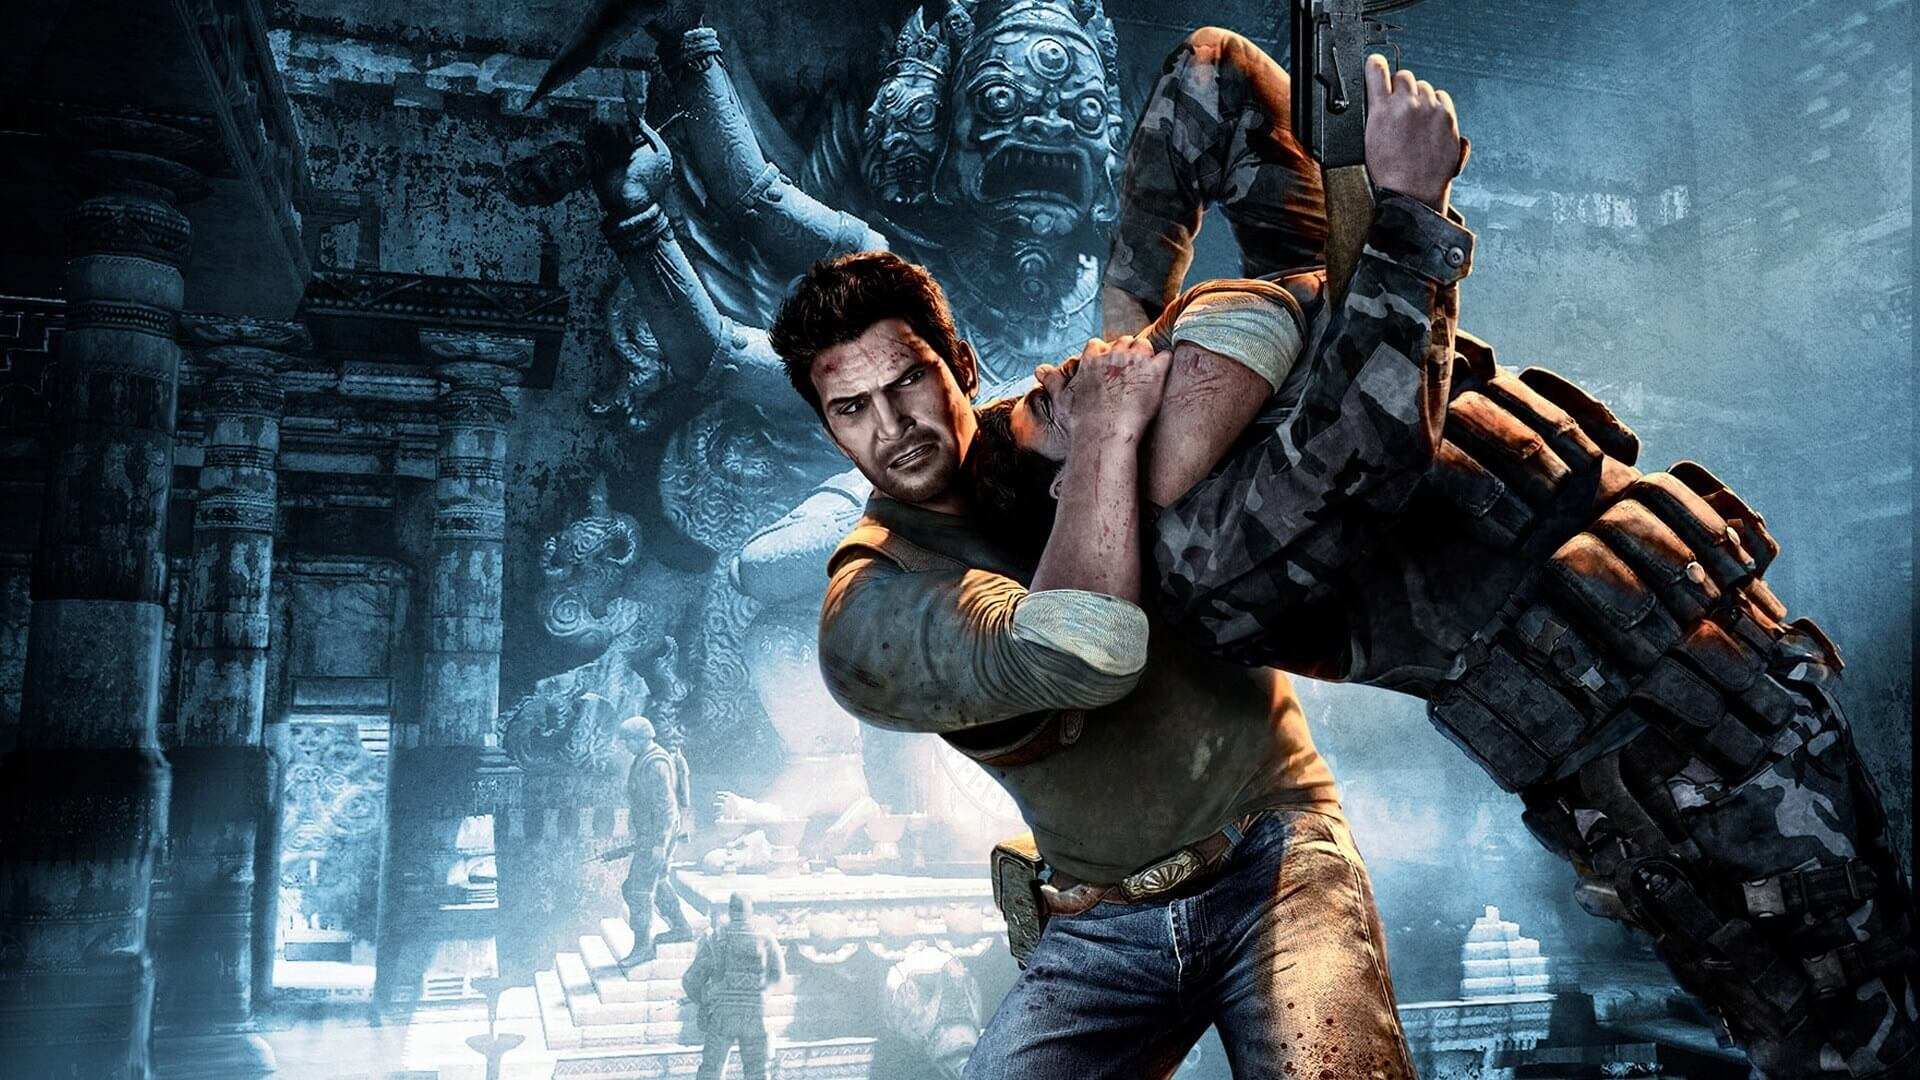 Uncharted The Nathan Drake Collection For Ps4 Reviews Opencritic